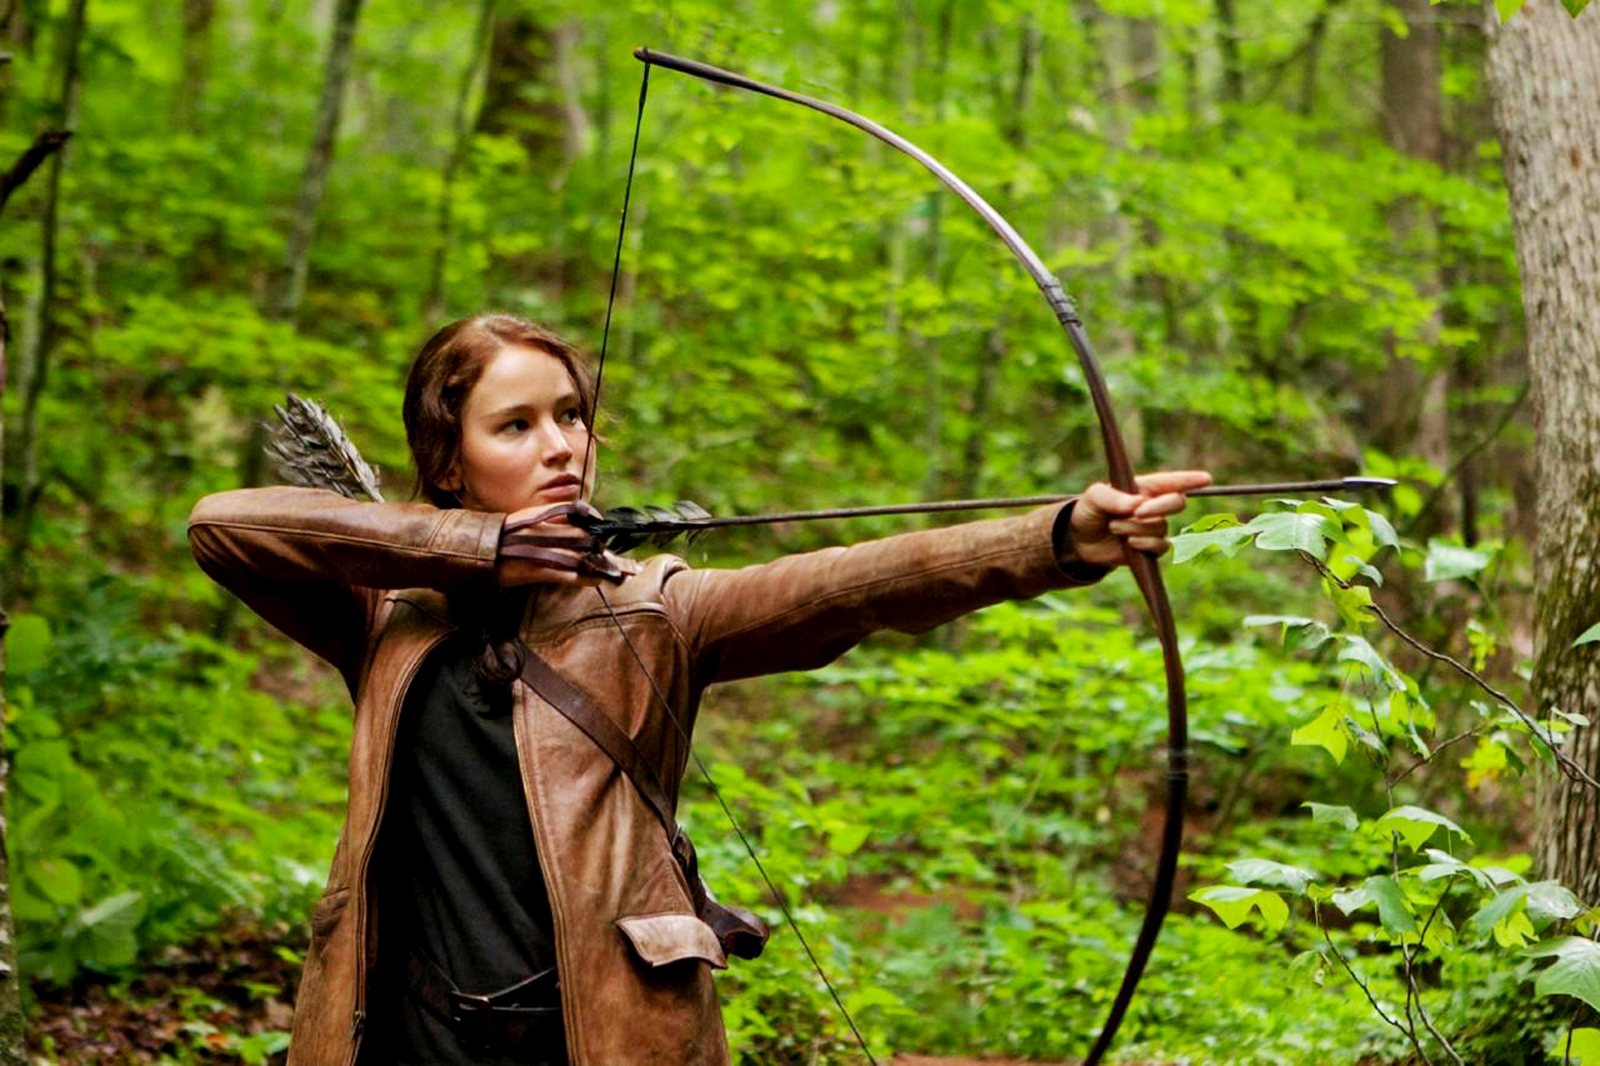 http://3.bp.blogspot.com/-x9r2SFU3nTM/T3BY9I4HXYI/AAAAAAAABAs/BrQG2e31VX0/s1600/The_Hunger_Games_Character_Archer_Katniss_Jenna_Lawrence_HD_Wallpaper-Vvallpaper.Net.jpg